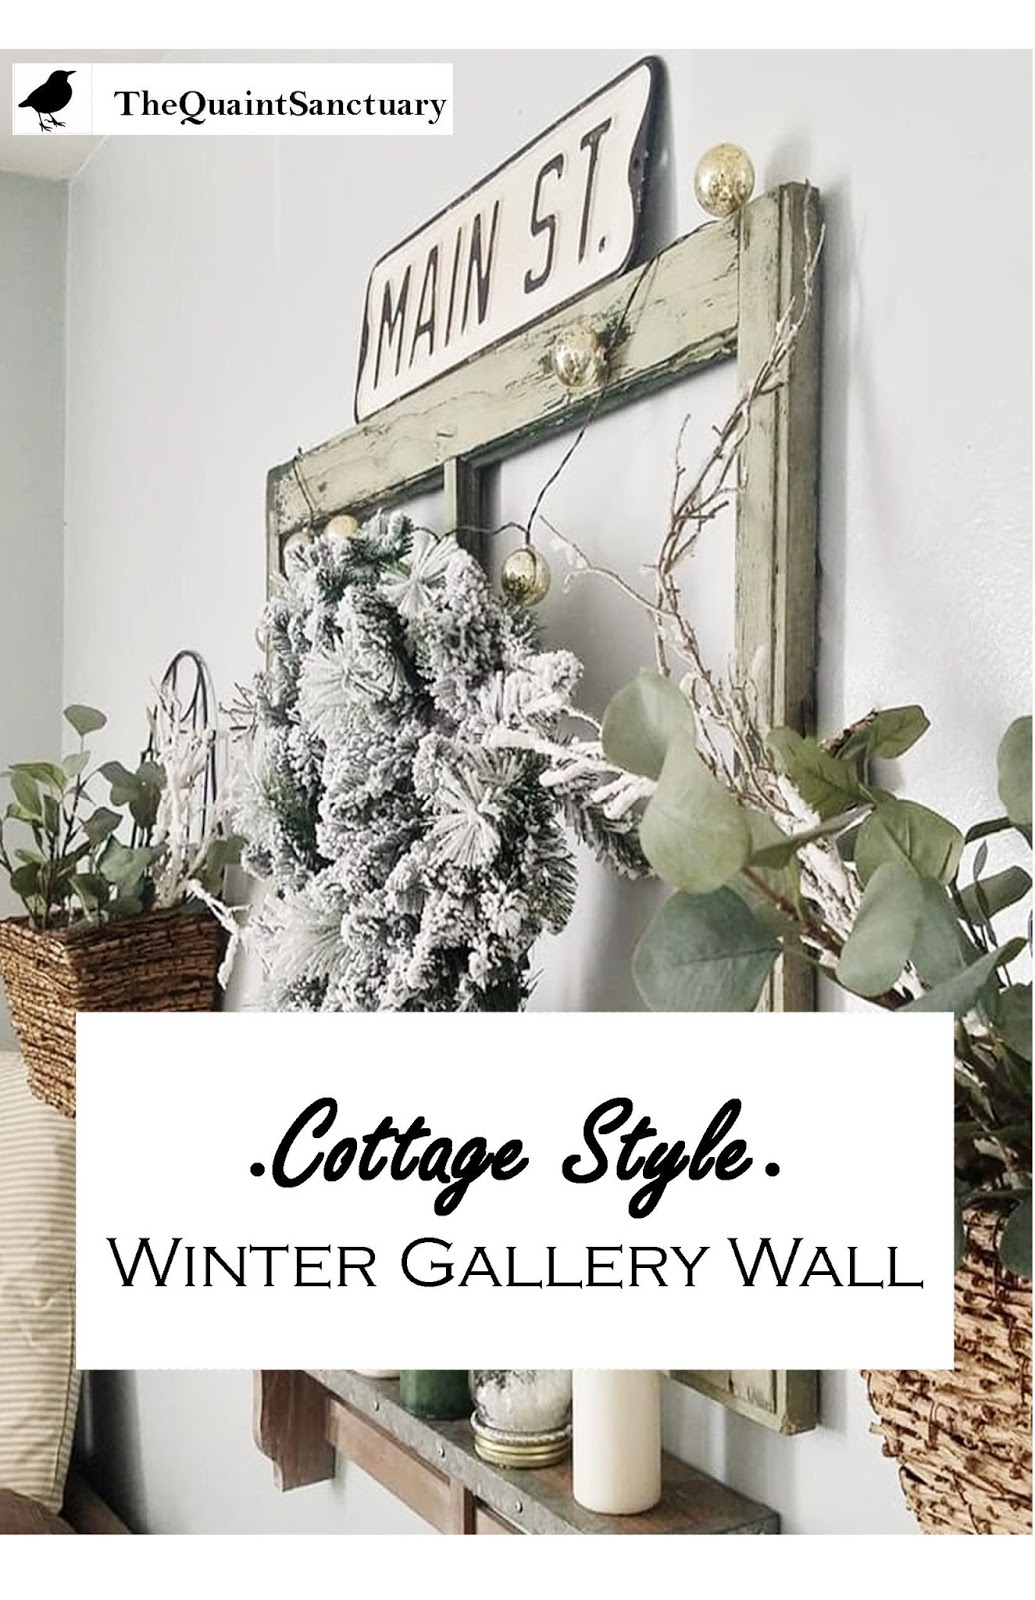 The Quaint Sanctuary: { Cottage Style Winter Gallery Wall Idea }